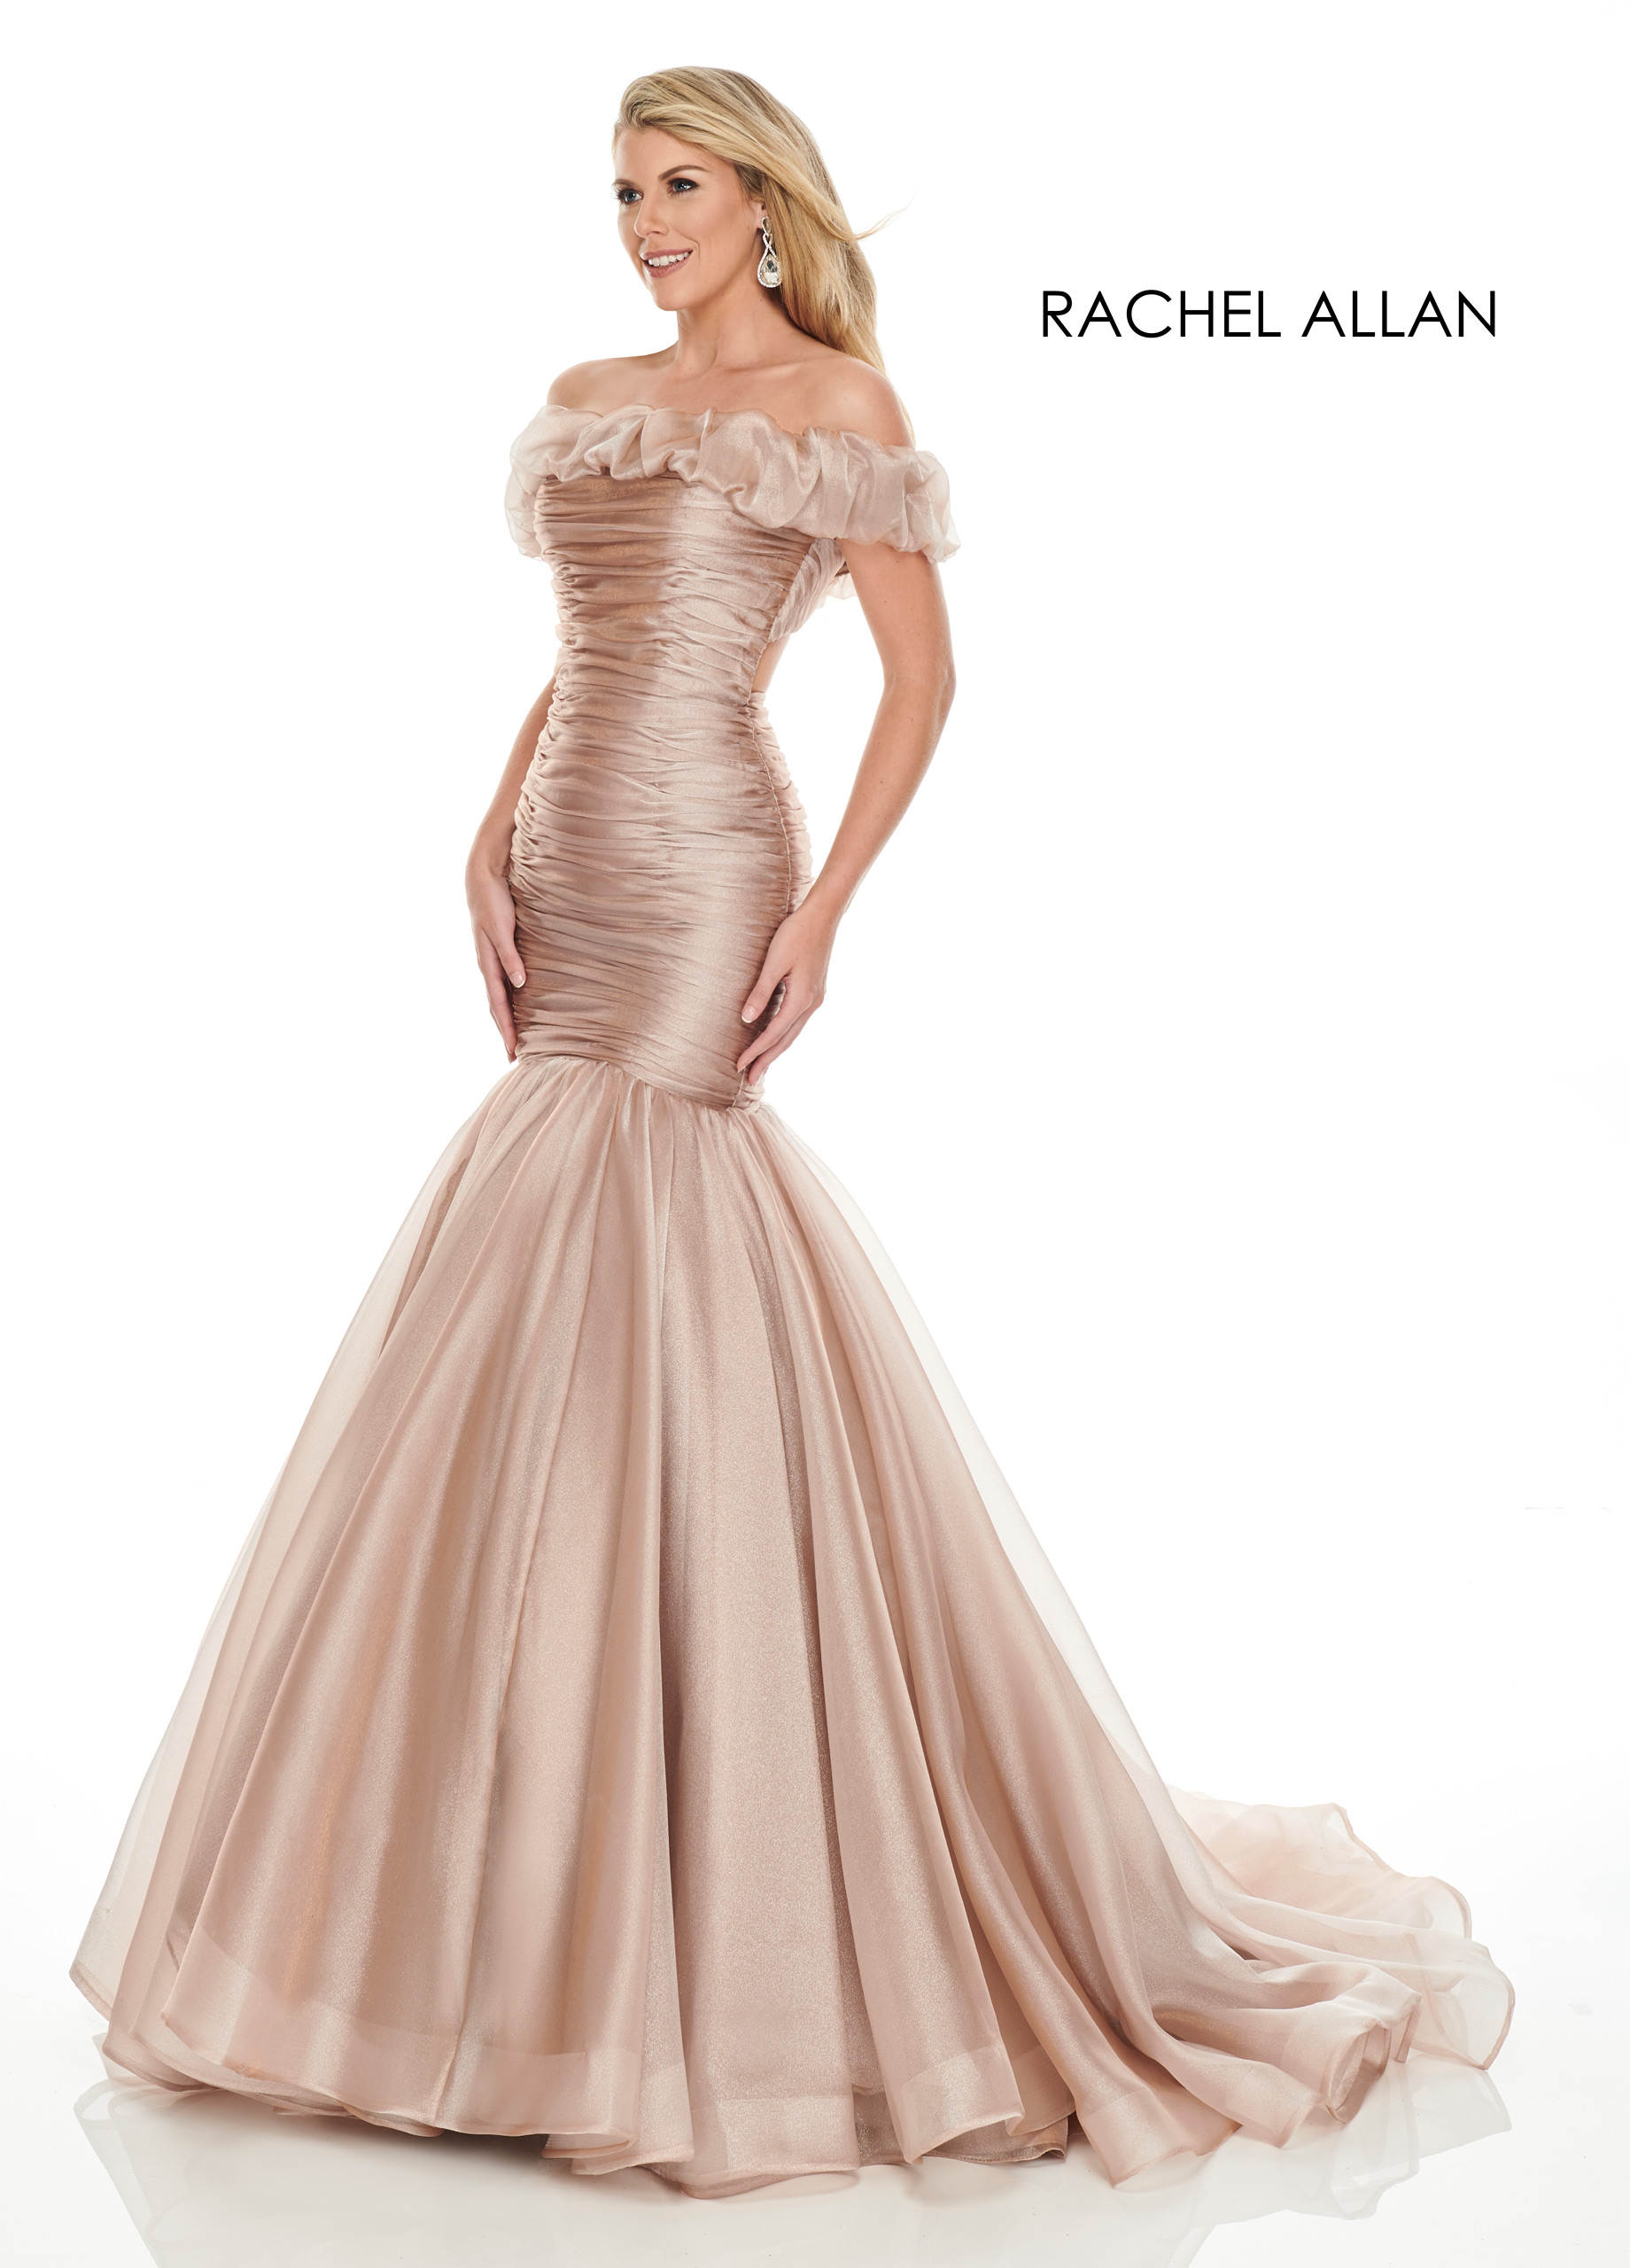 Off The Shoulder Drop Waist Couture Dresses in Champagne Color